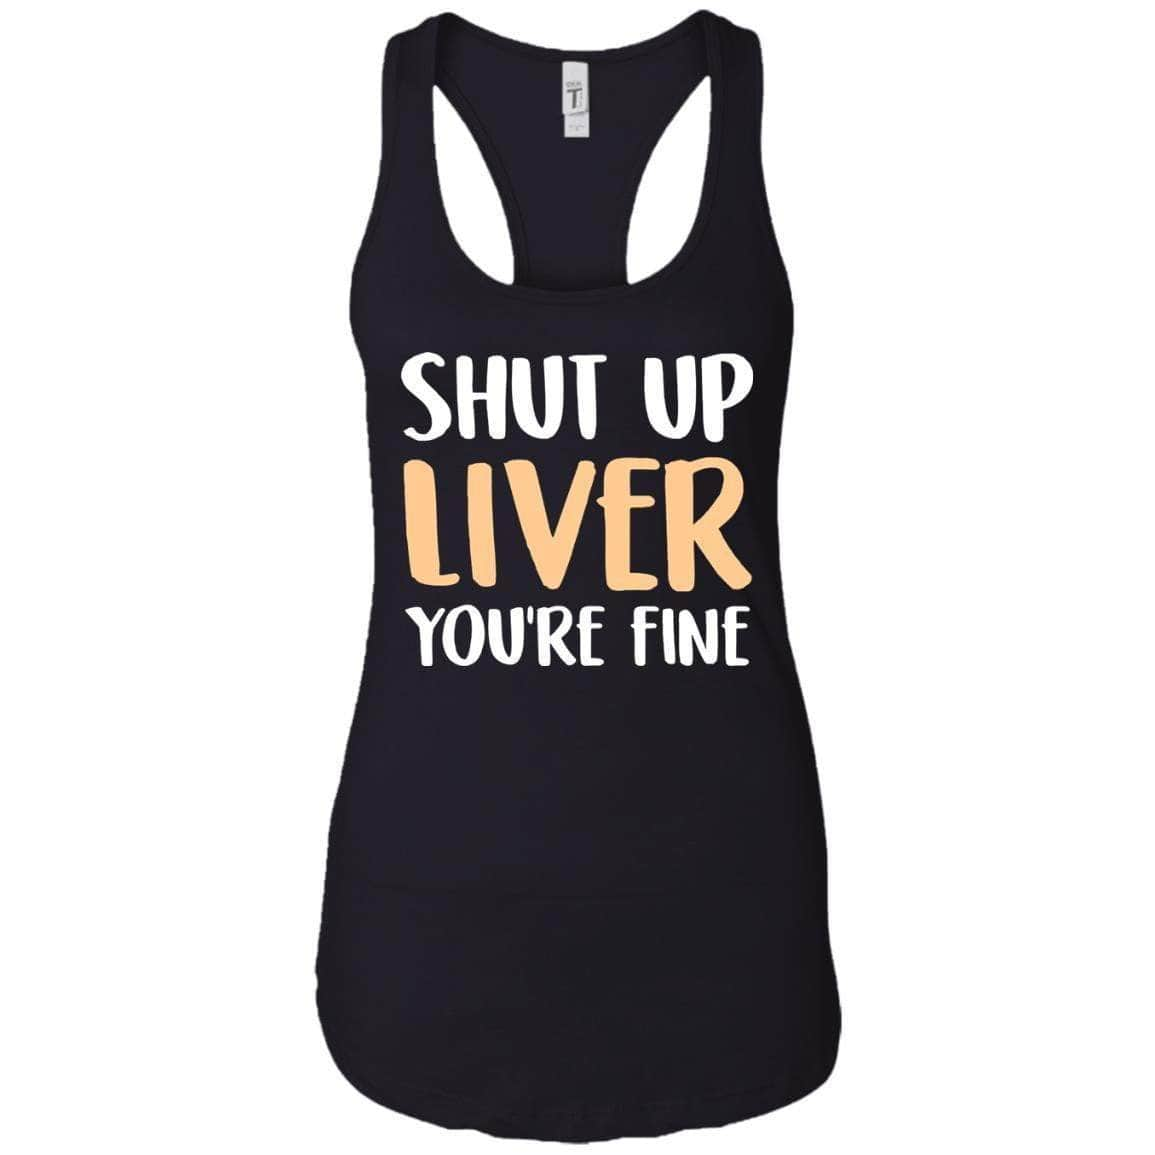 SHUT UP LIVER WOMEN'S RACERBACK TANK